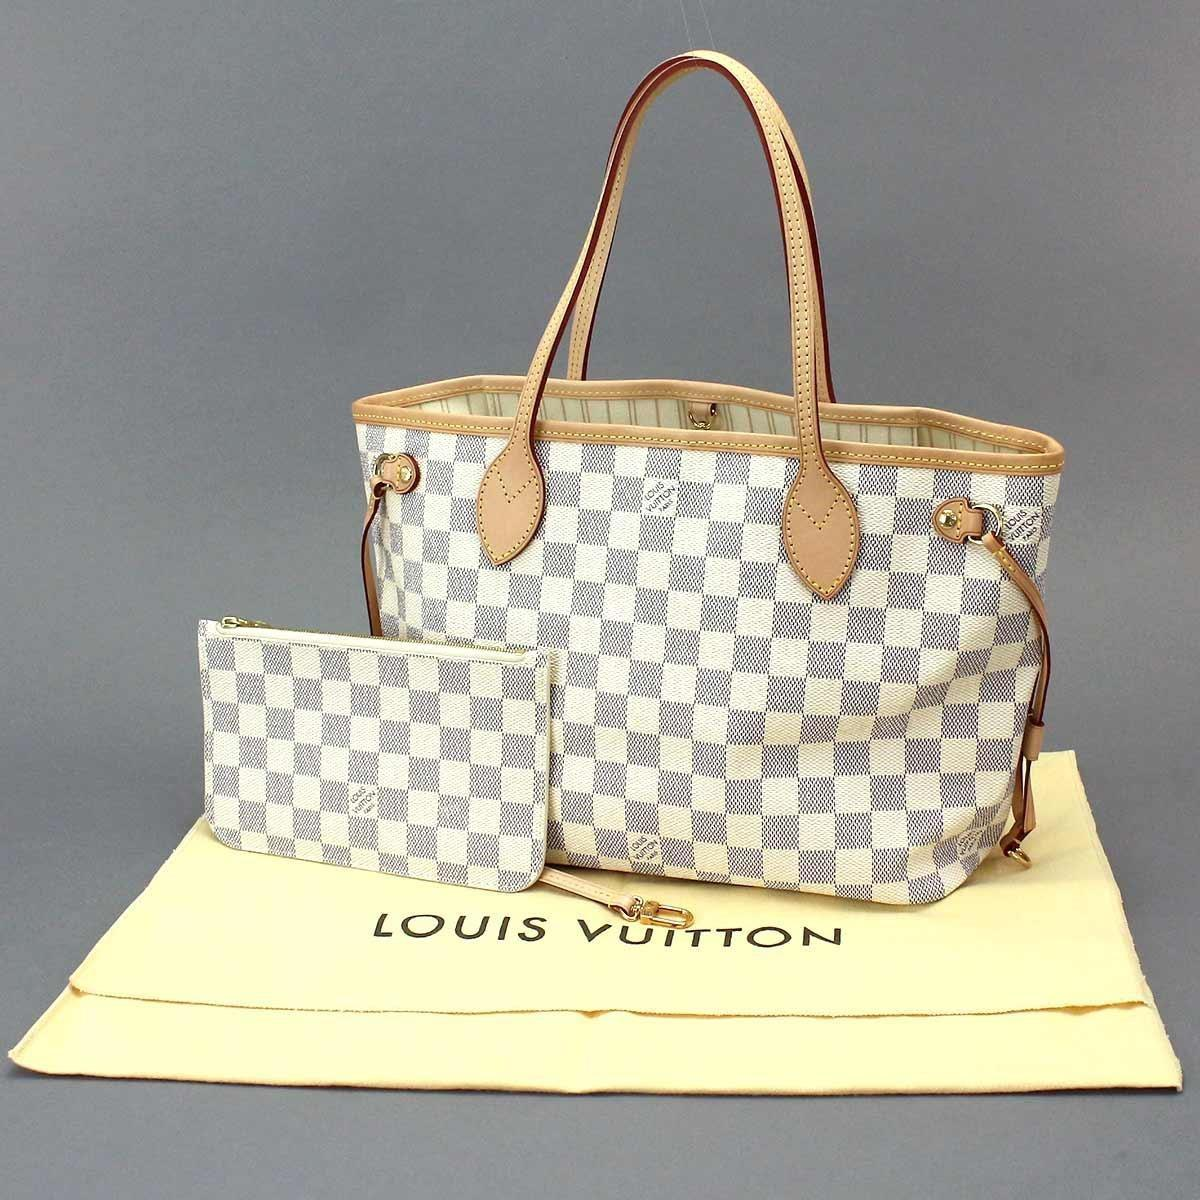 39e0573436e Louis Vuitton Blue Damier Azur Neverfull Pm Tote Bag White N41362 90046400..